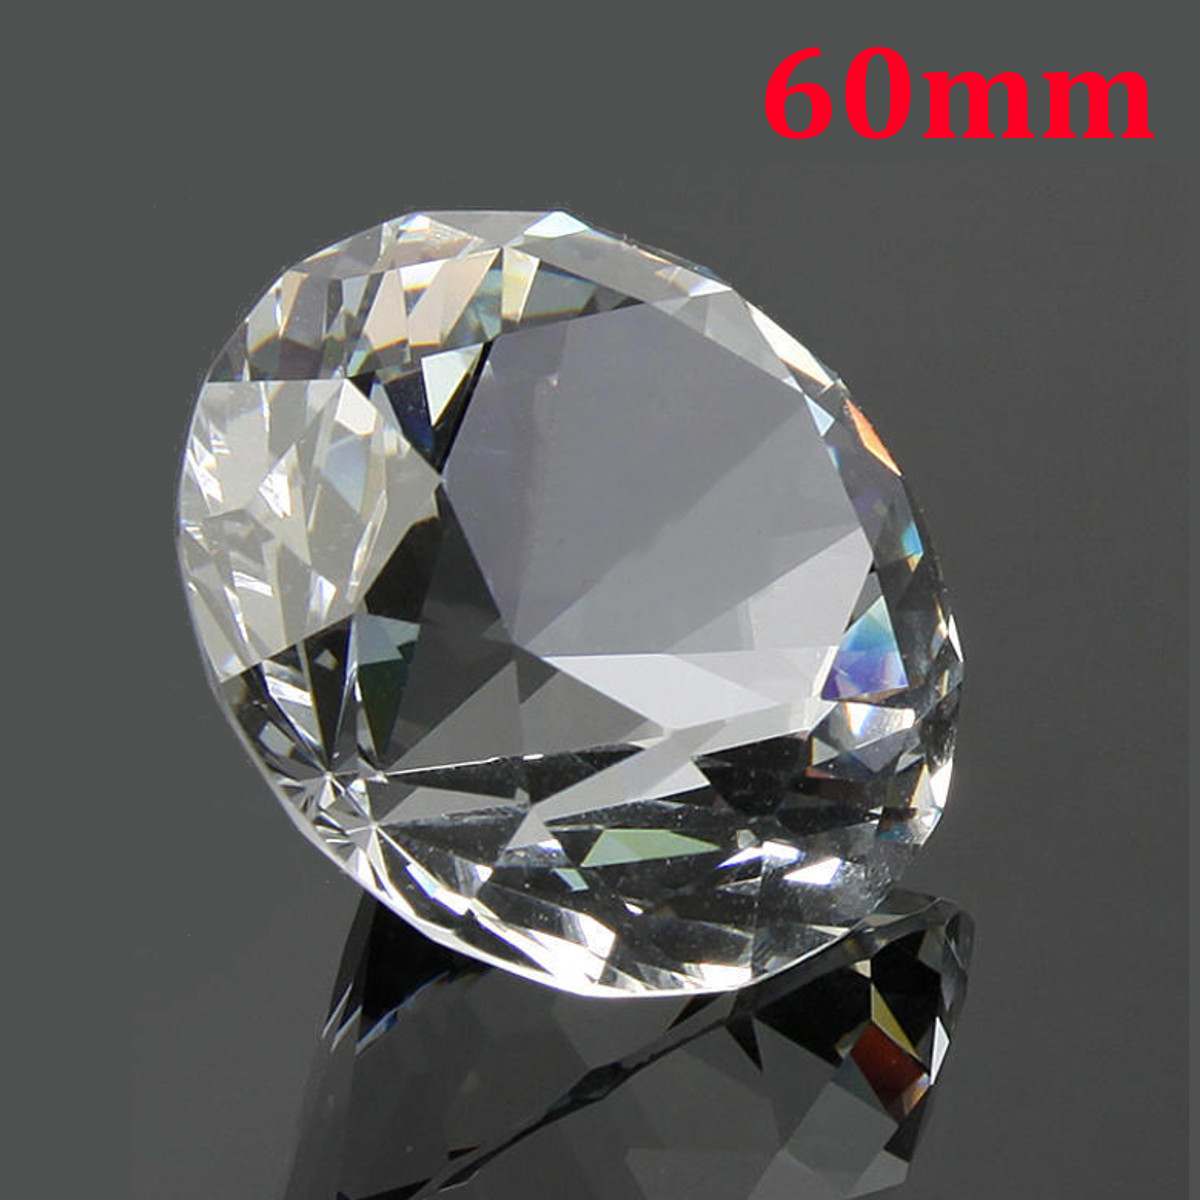 Paperweight Craft Wedding-Ornament Gem-Decor Feng-Shui-Collection Glass Crystal Diamond title=